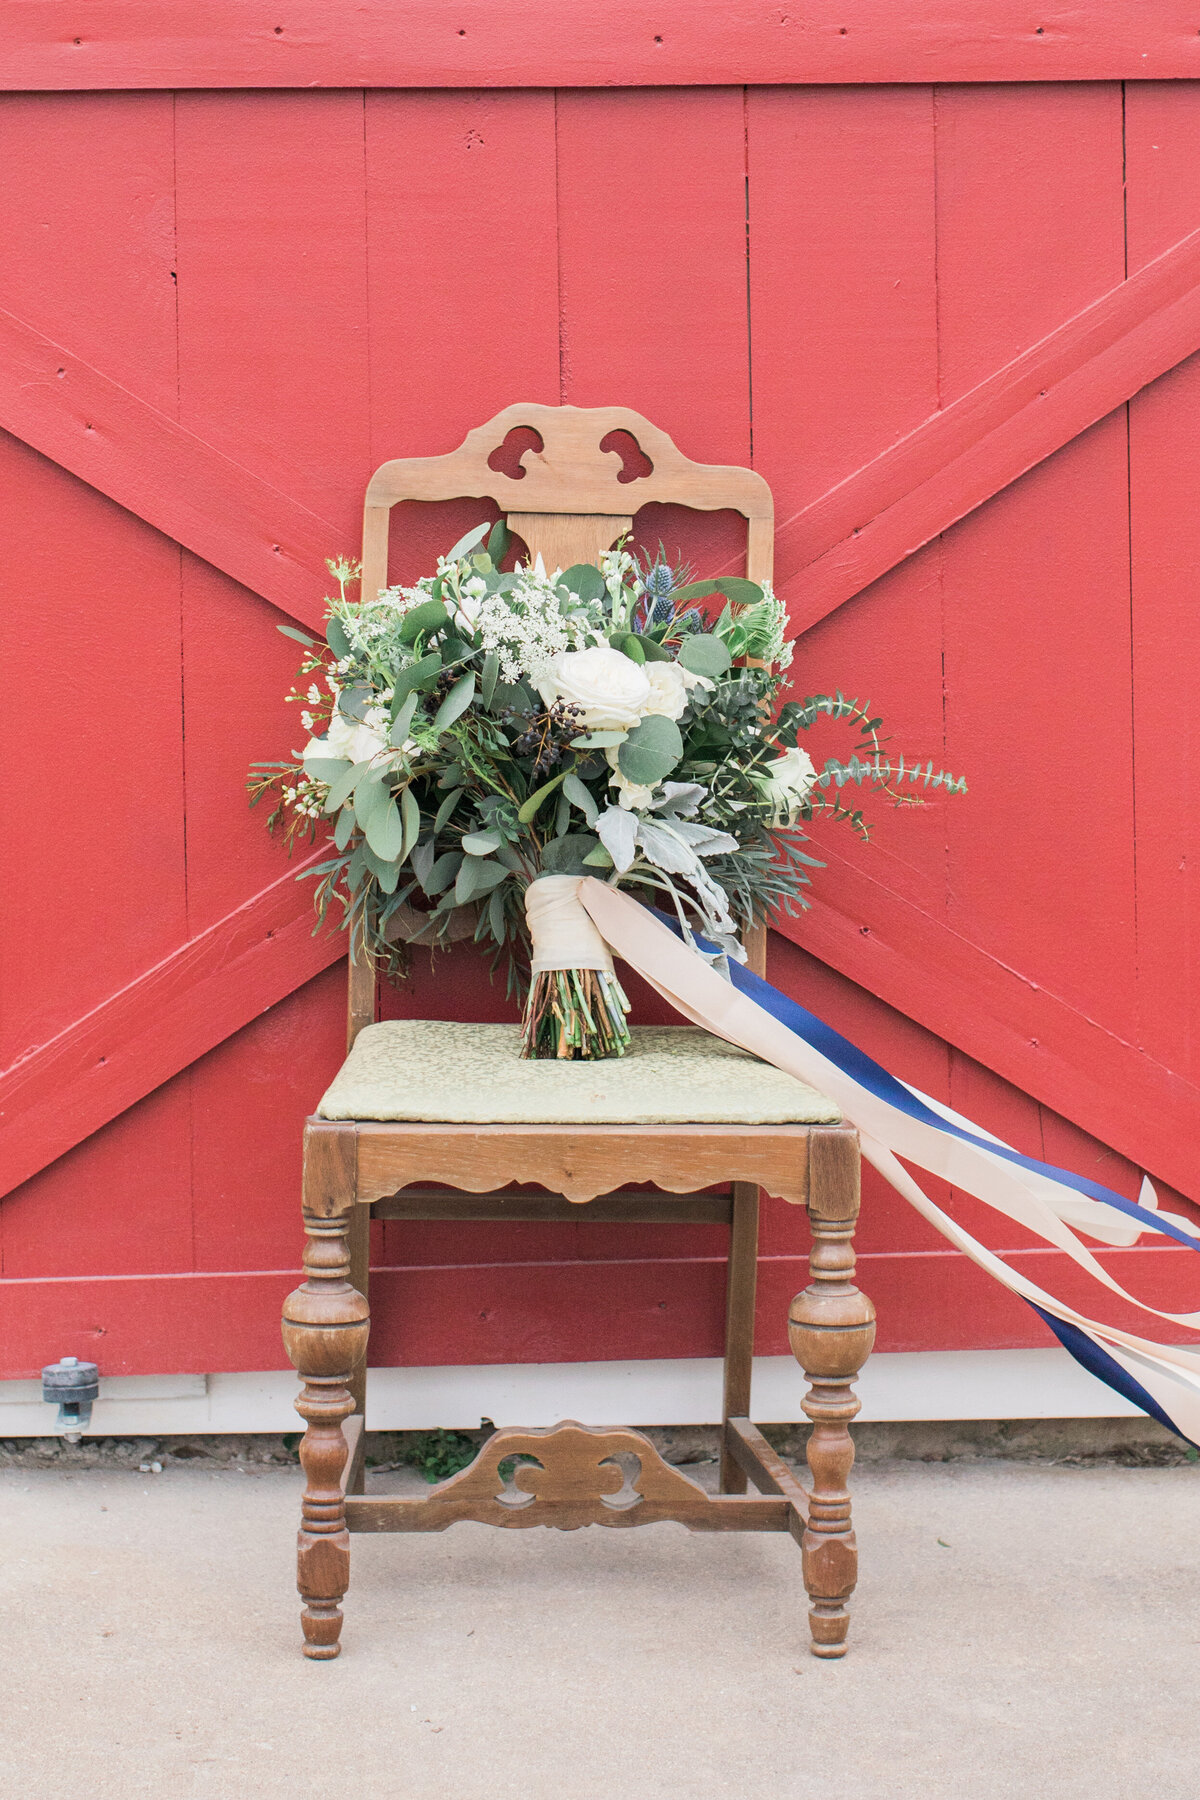 A rustic vintage chair holding a bridal bouquet in front of a red barn door